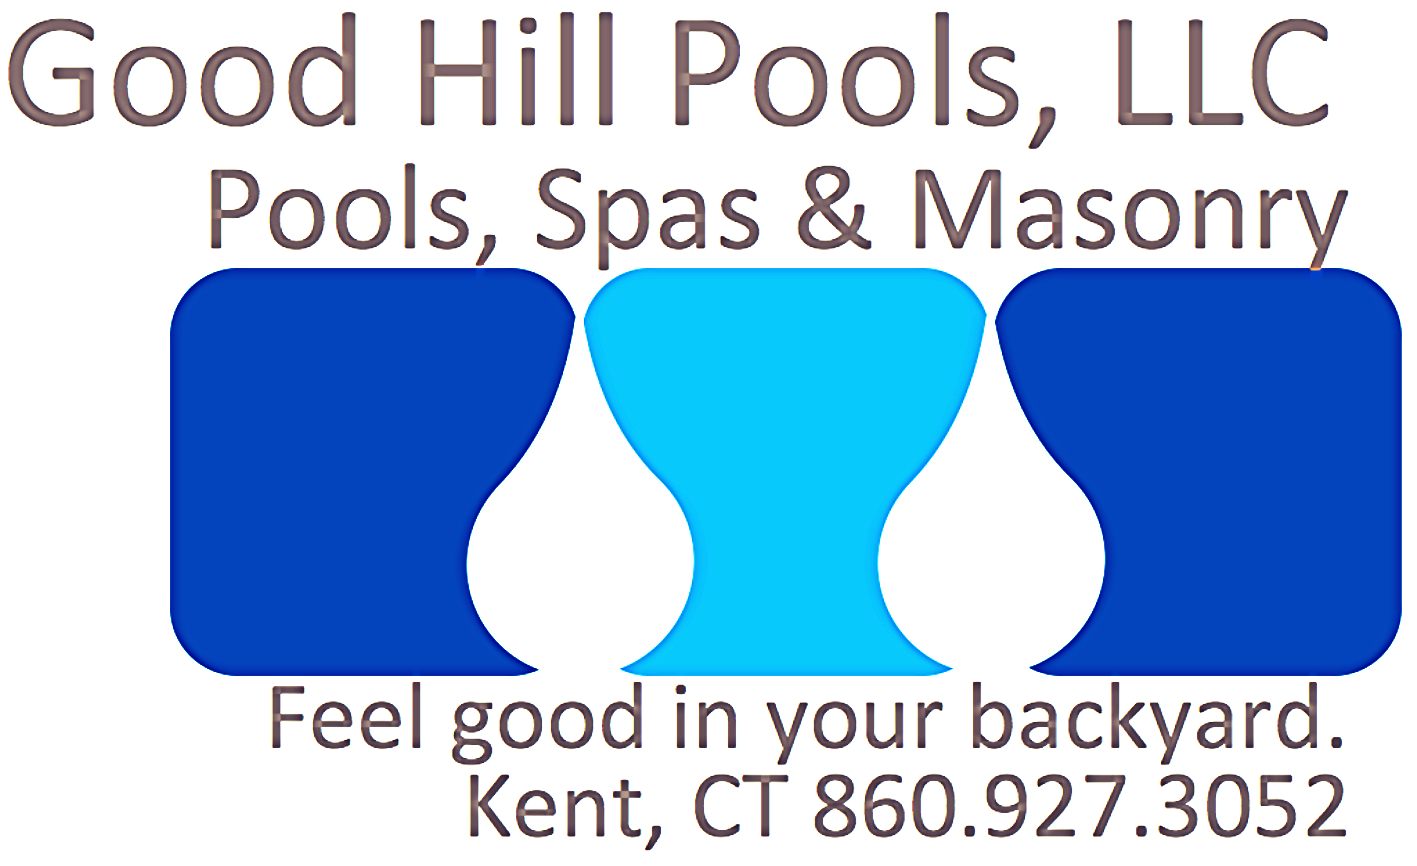 Good Hill Pools